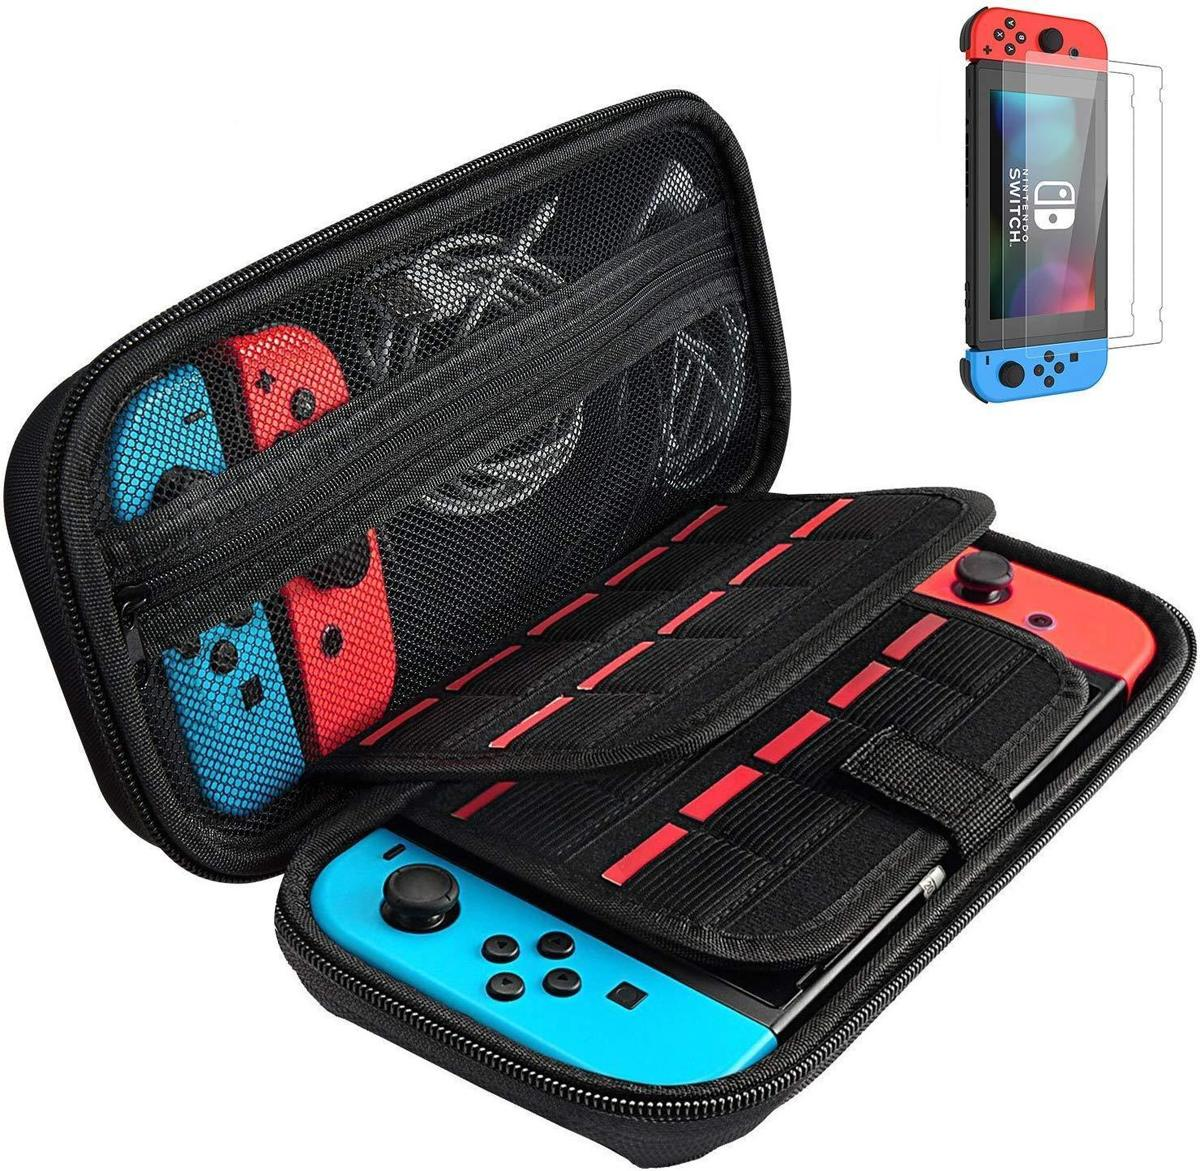 Nintendo Switch Case + Screenprotector - 20 Gamekaartvakken - Zwart